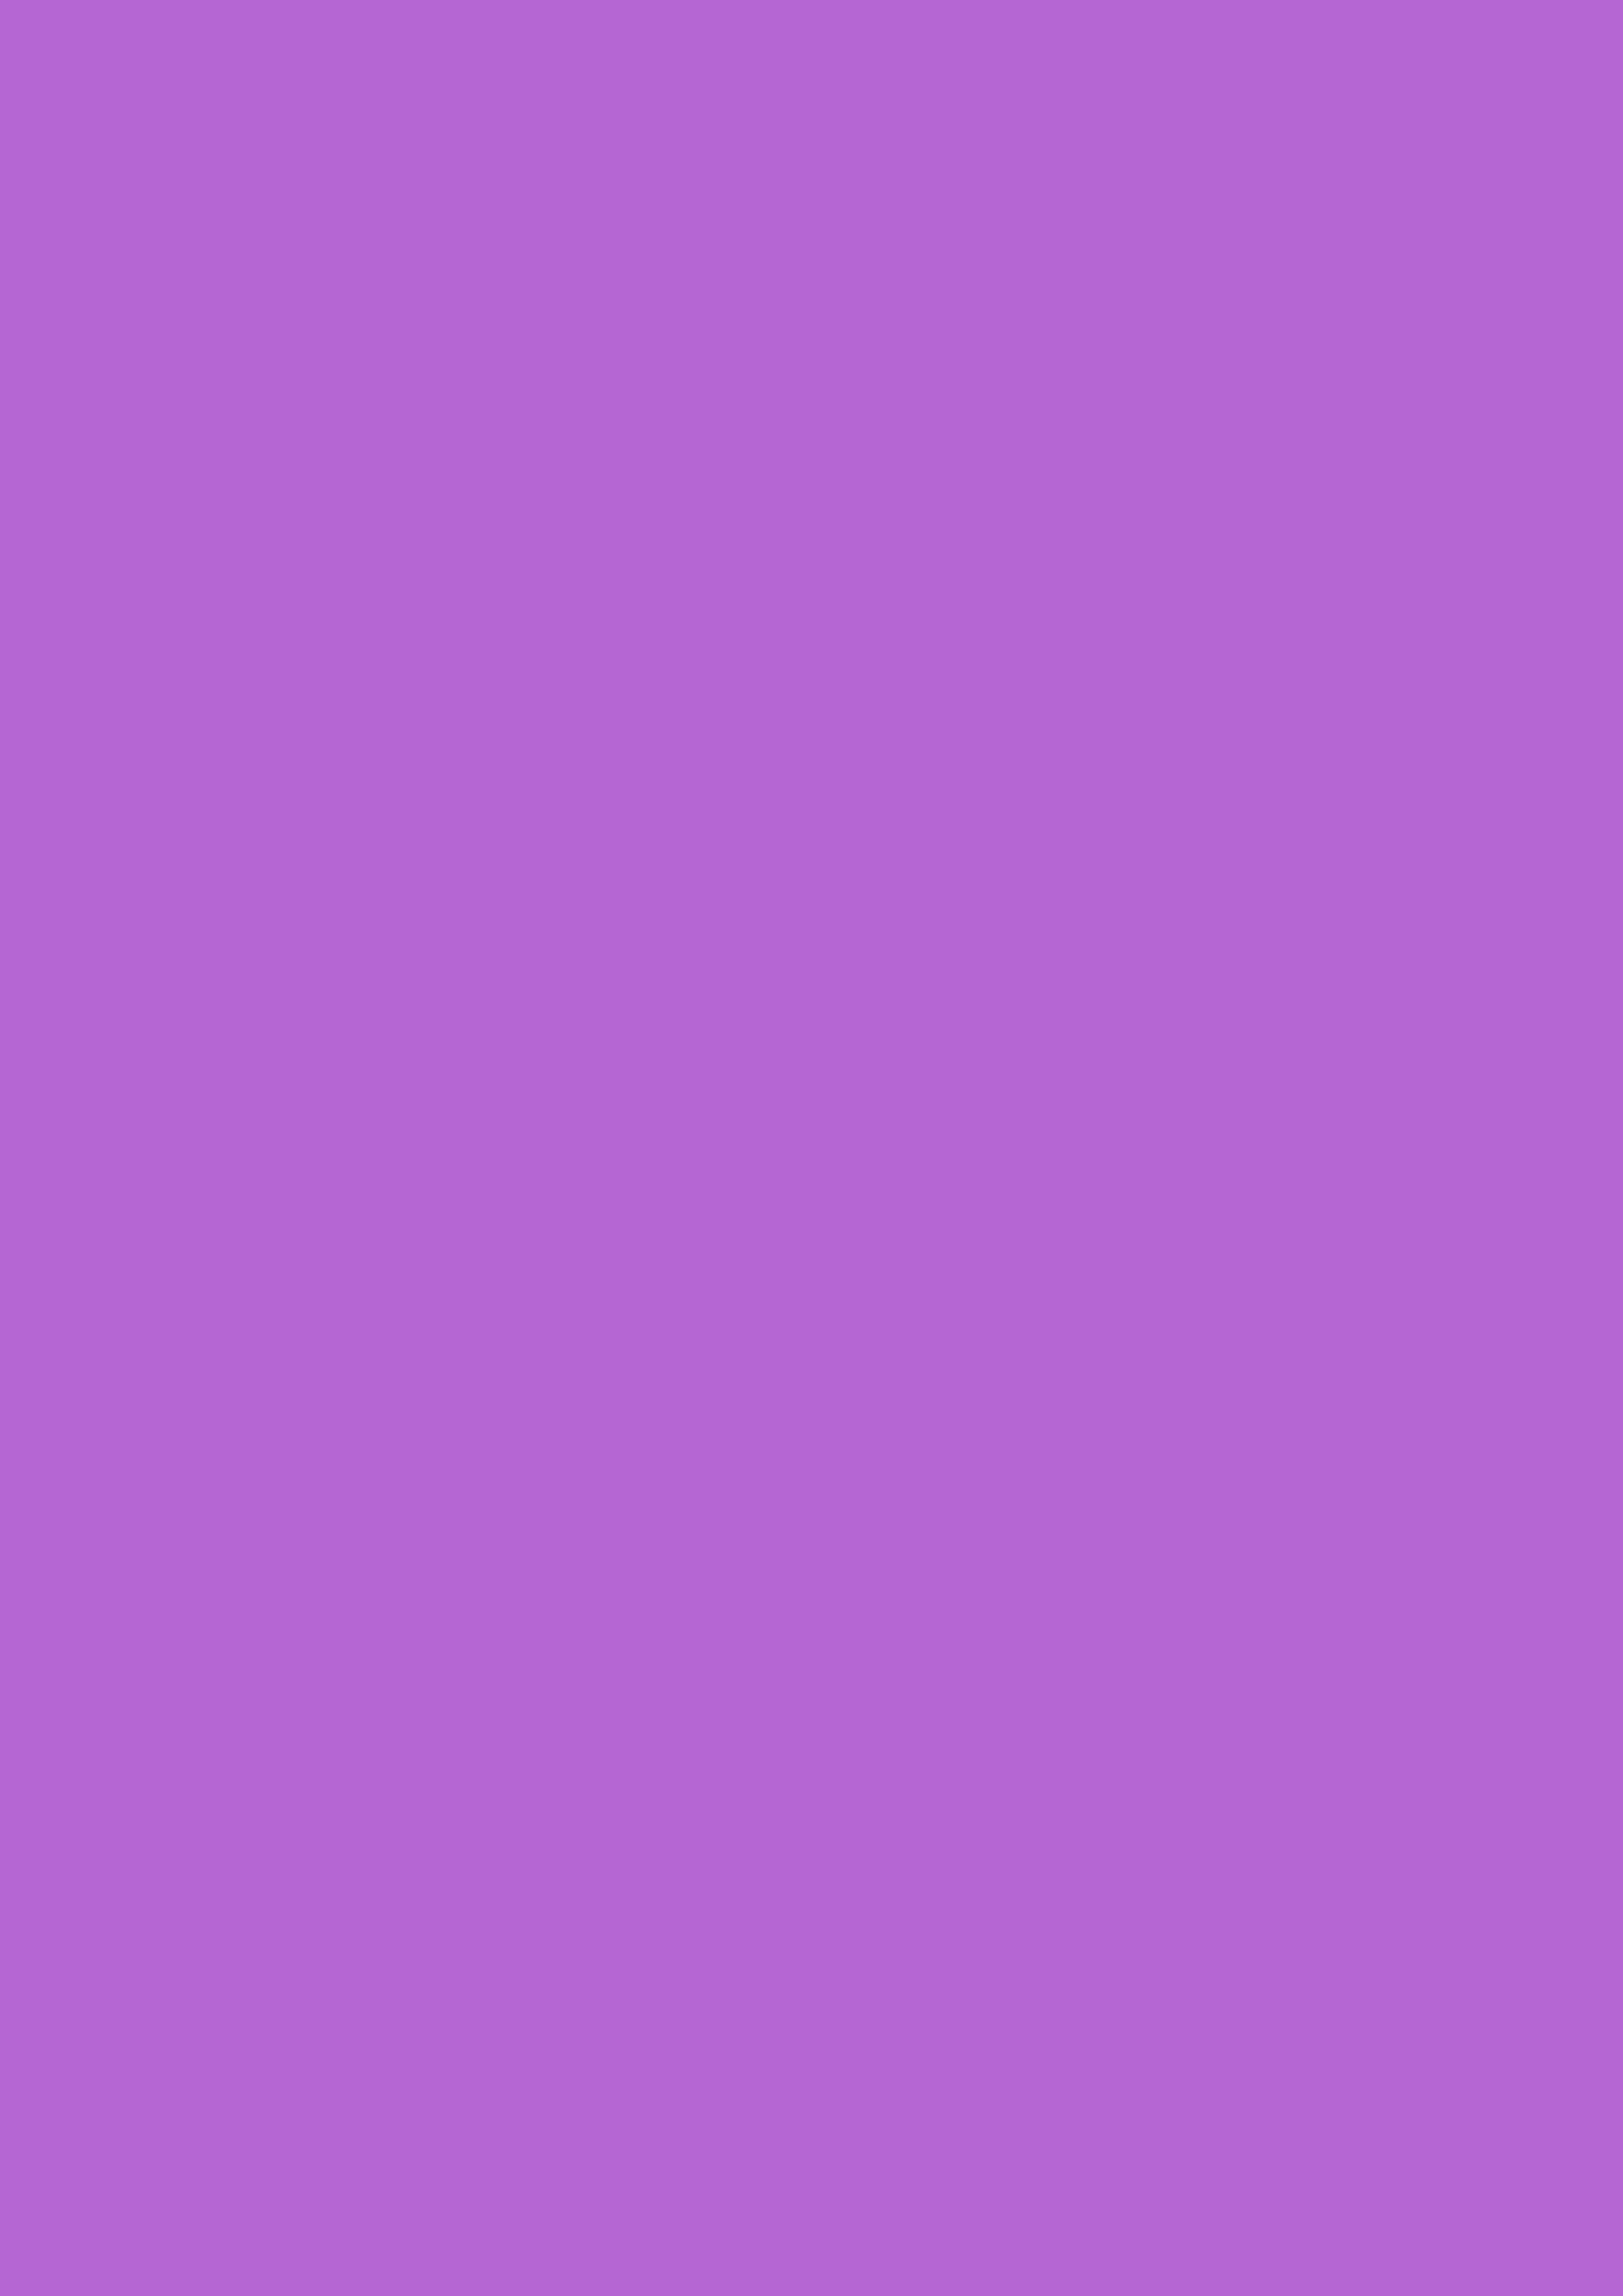 2480x3508 Rich Lilac Solid Color Background